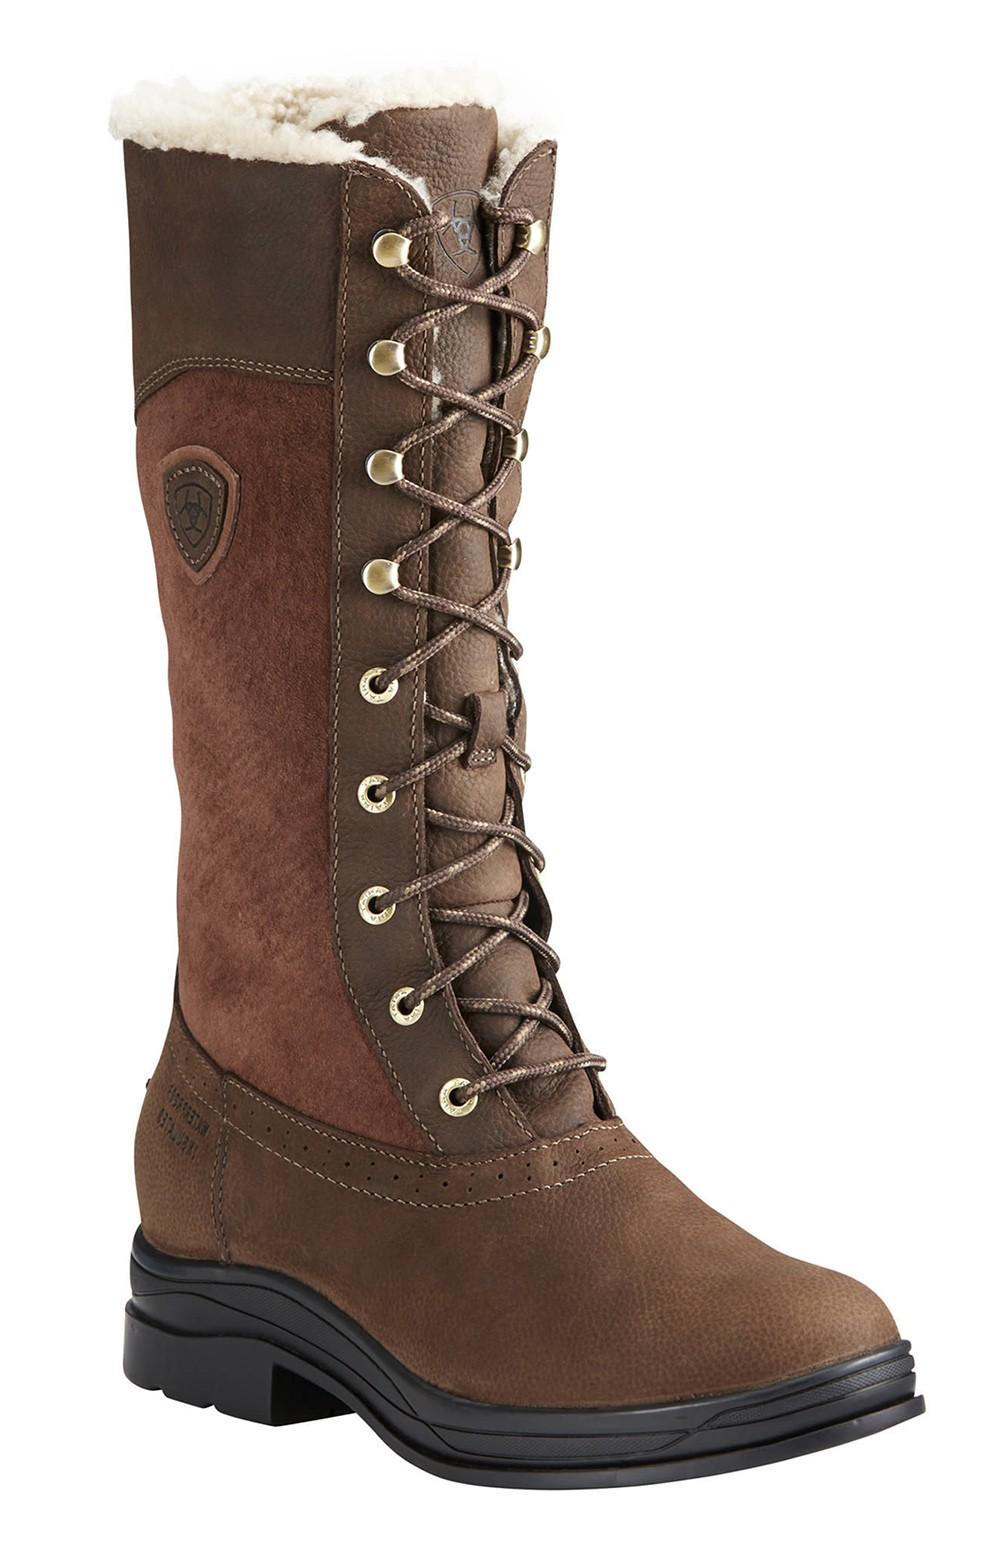 78c8112a258 Ladies Ariat Wythburn H2O Insulated Boot